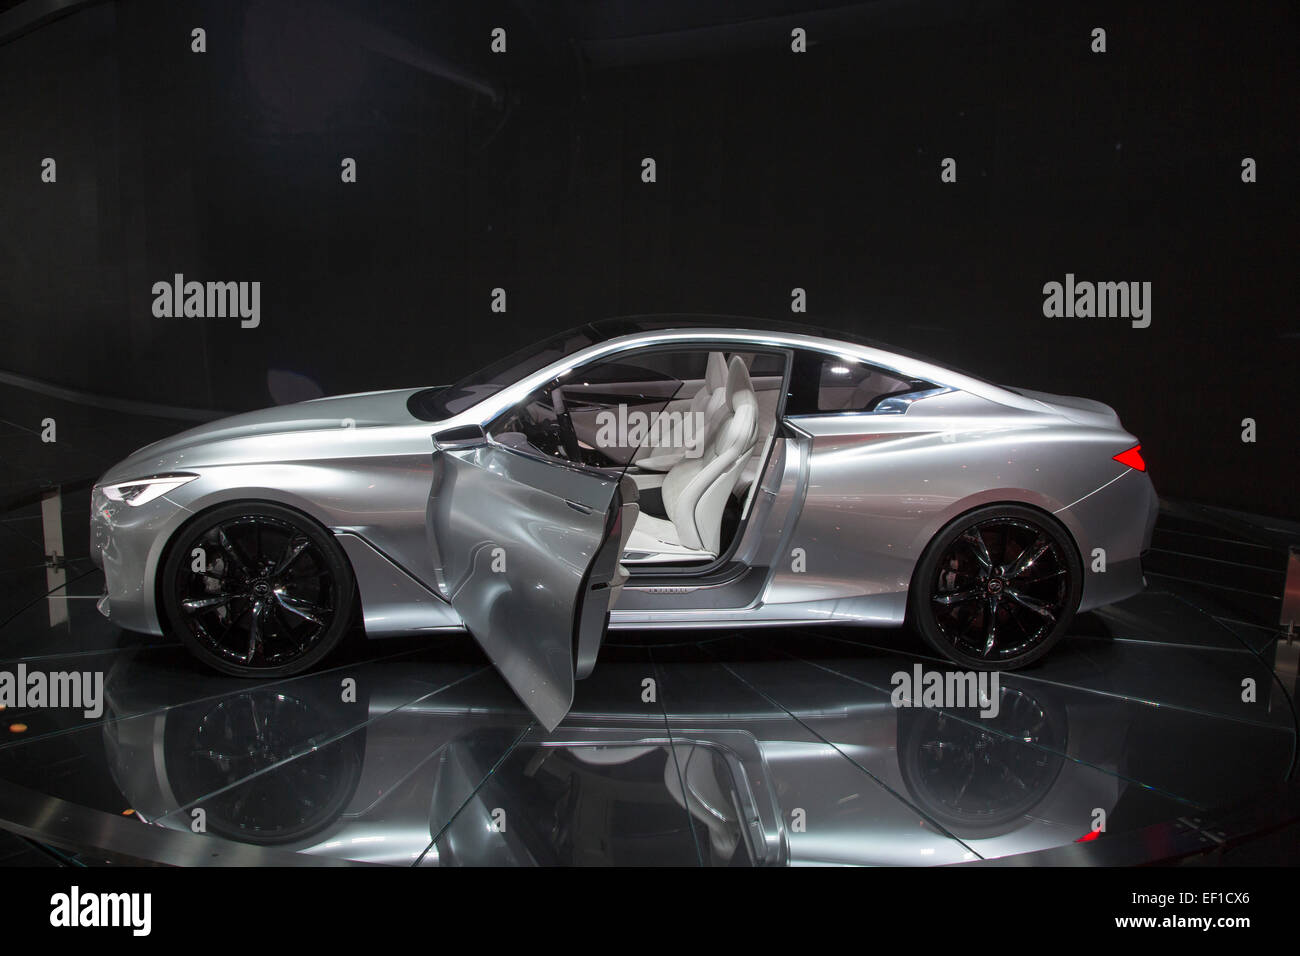 Detroit, Michigan - The Infiniti Q60 concept car on display at the North American International Auto Show. - Stock Image